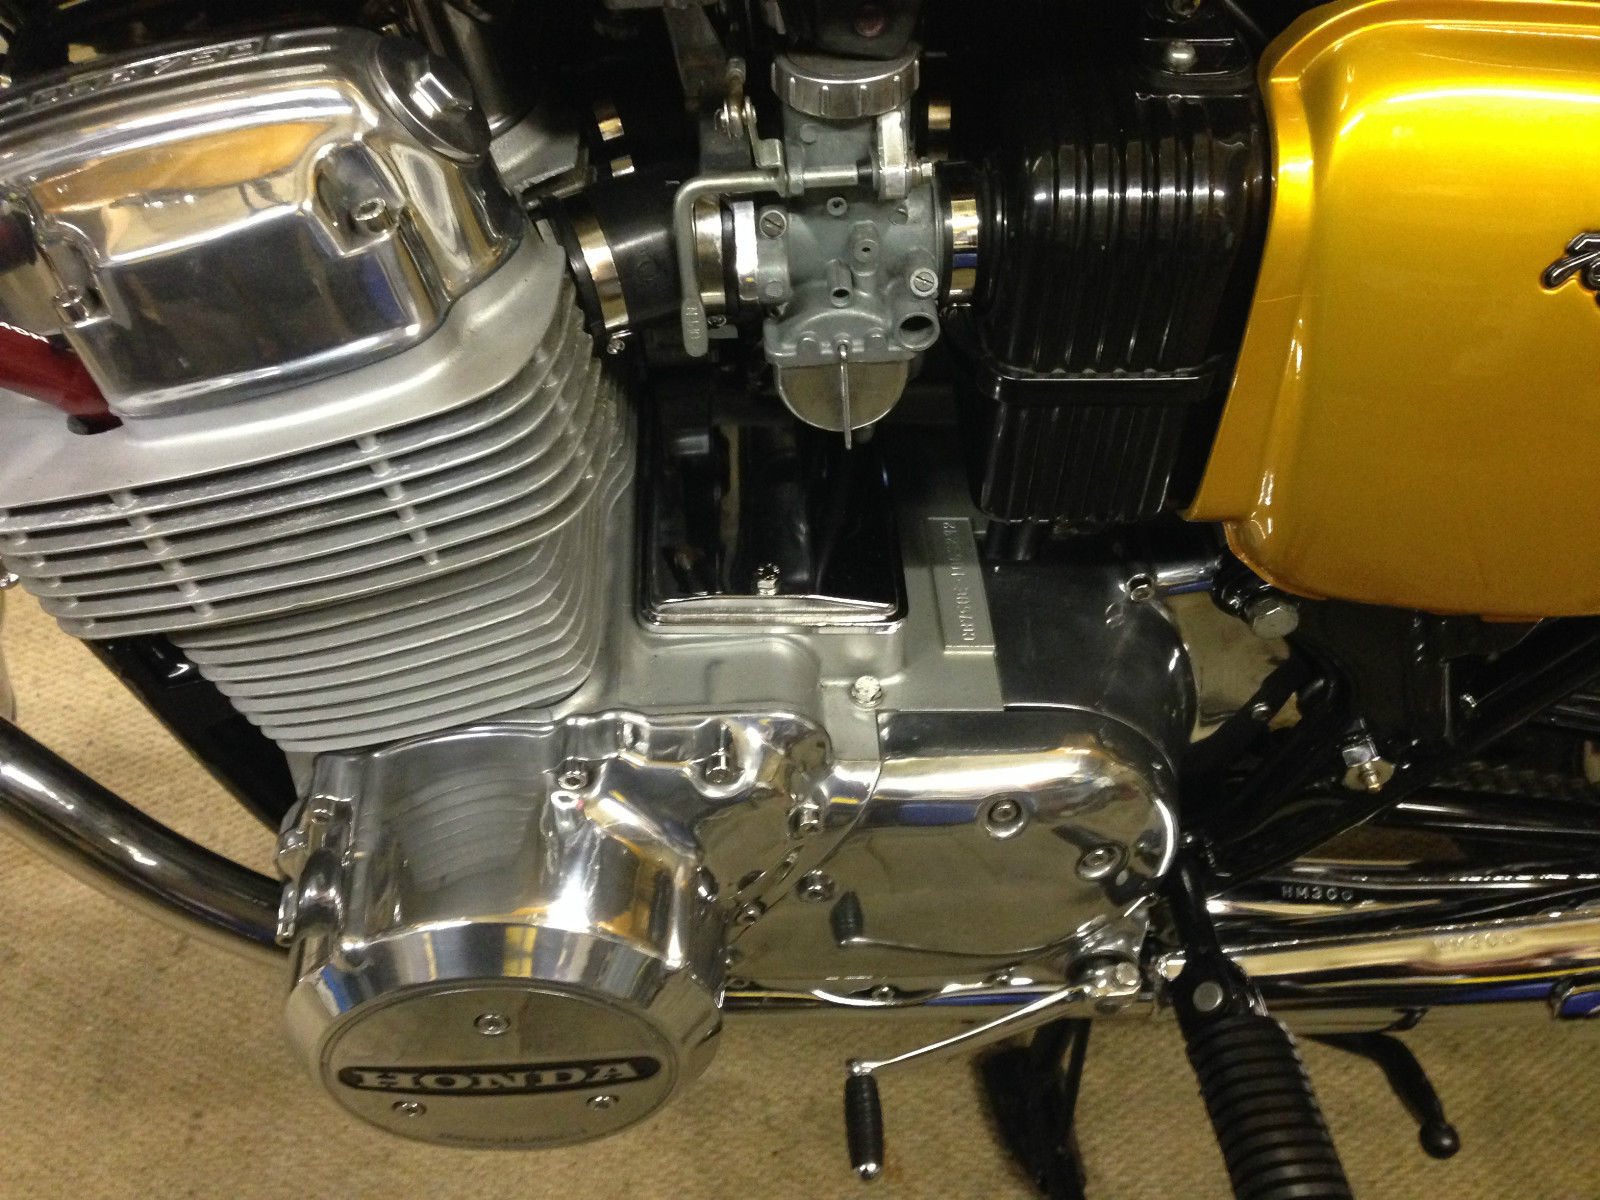 Honda CB750 K1 - 1970 - Engine and Gearbox, Motor and Transmission, Carburettors, Gear Change, Sprocket Cover and Engine Cases.